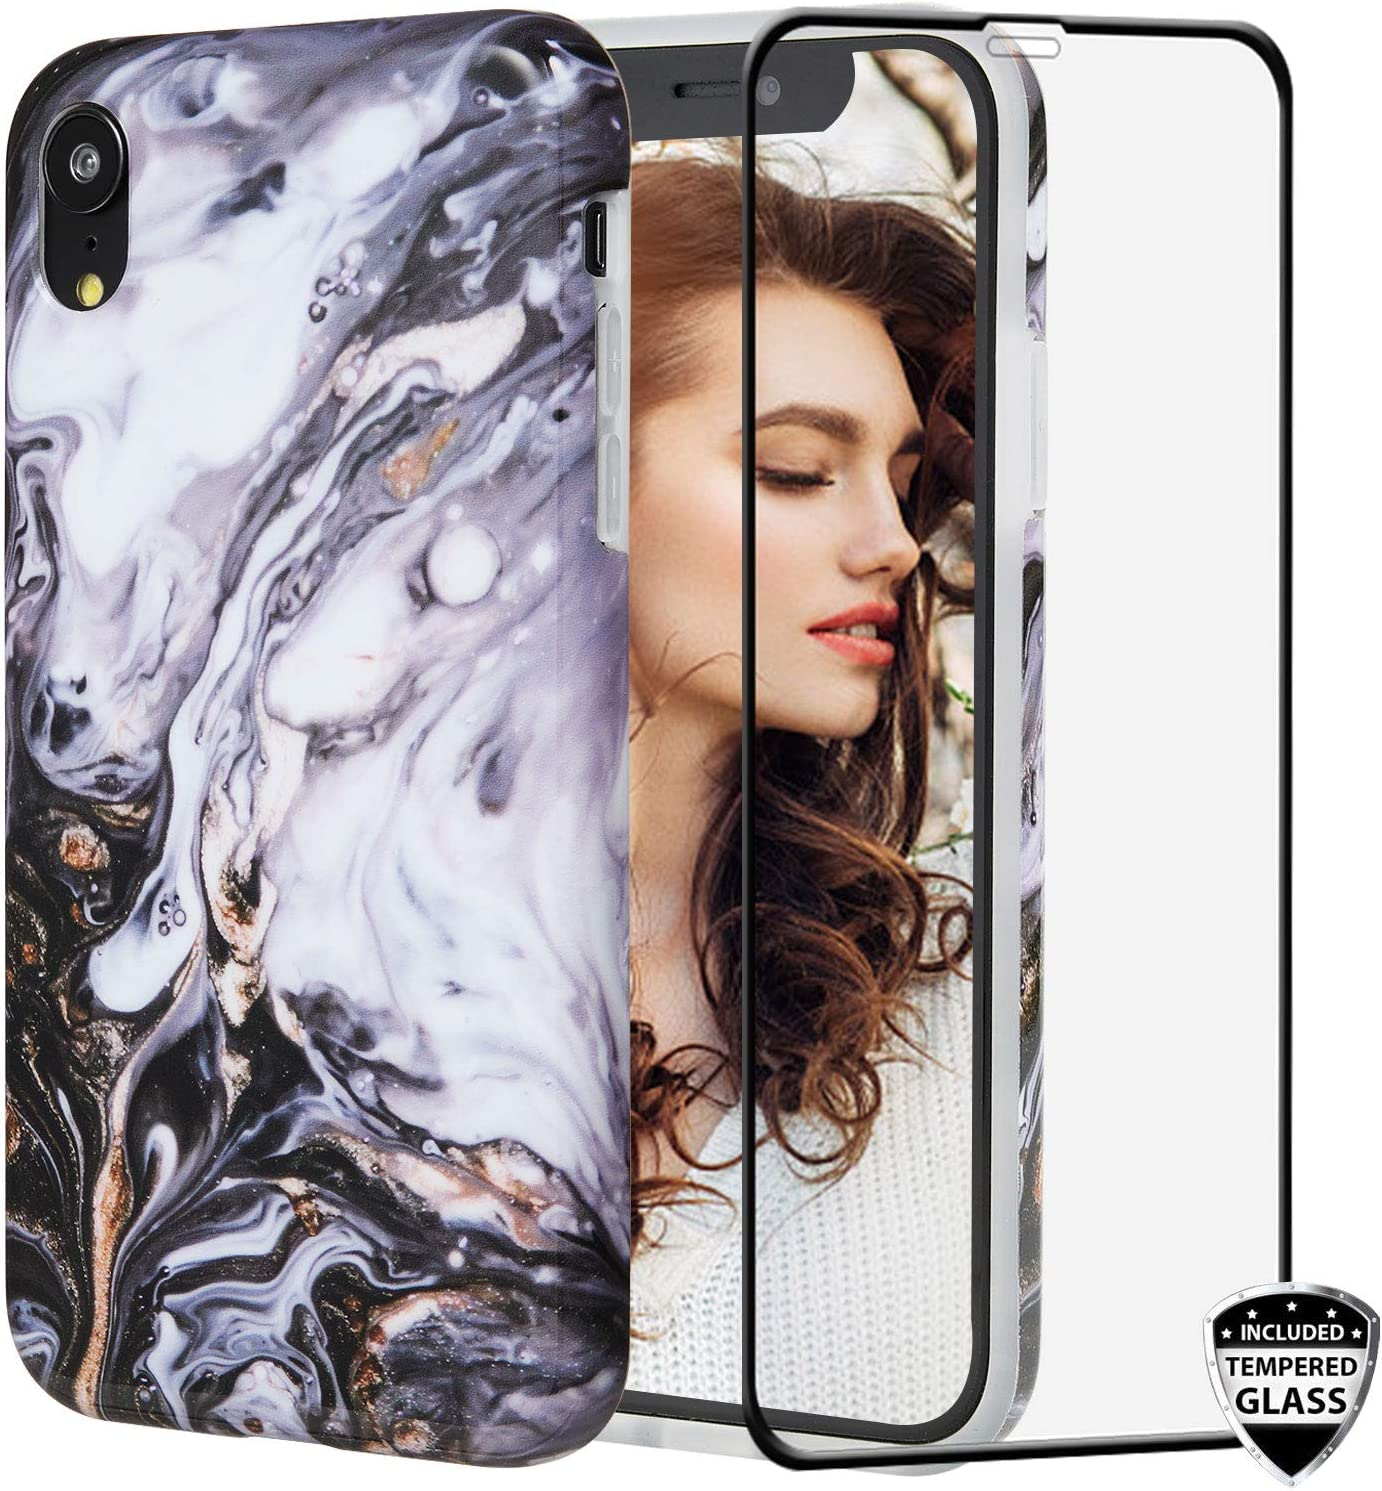 iPhone XR Case with Glass Screen Protector,REEJAX Cute Rose Marble for Girls Women Best Protective Slim Fit Clear Bumper Glossy TPU Soft Silicon Cover Phone Case for iPhone XR 6.1inch